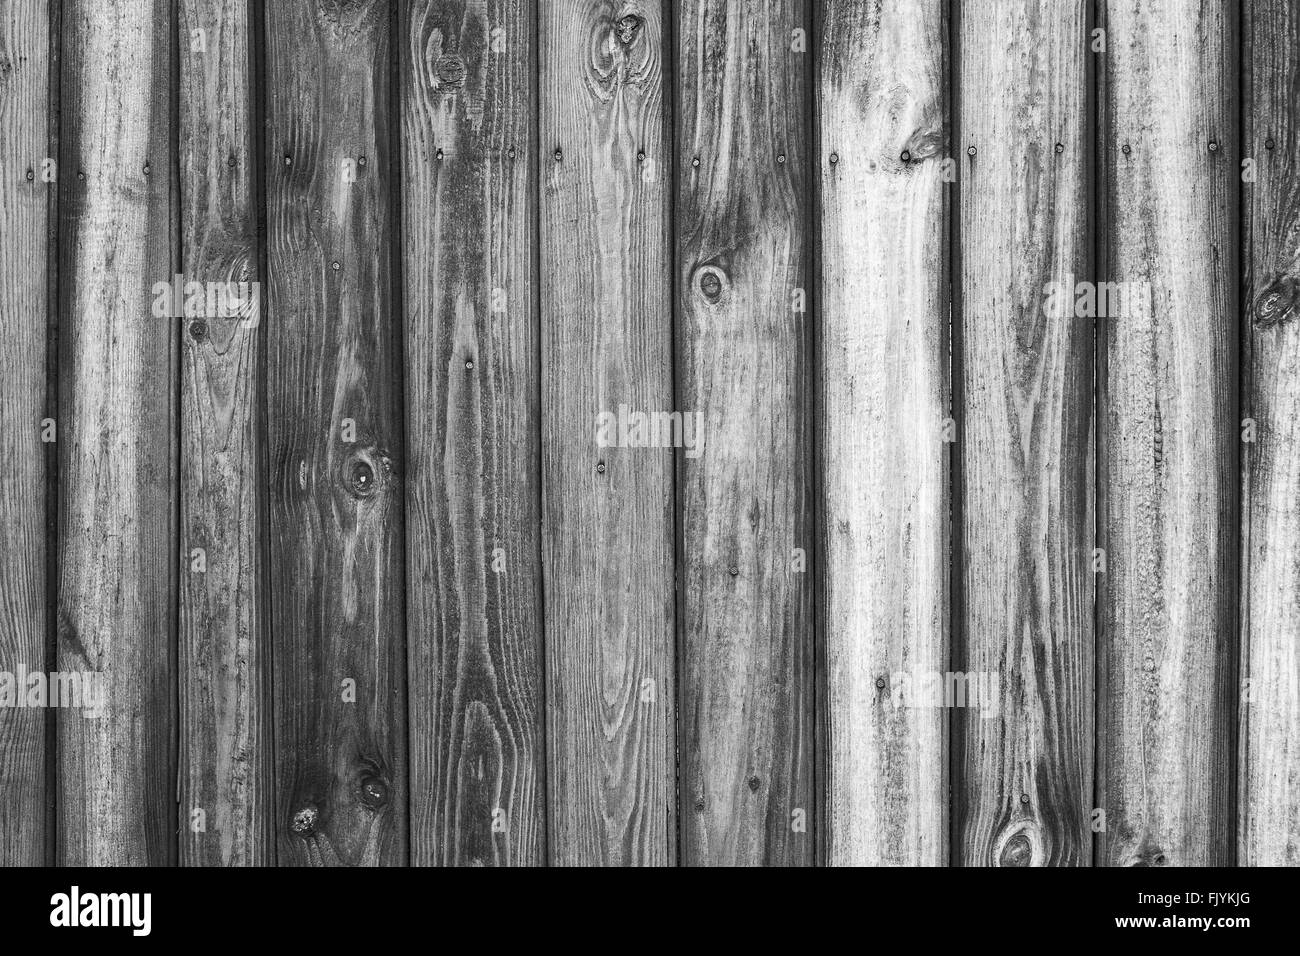 Vintage black and white wood background. Grunge wooden weathered oak or pine textured planks. - Stock Image